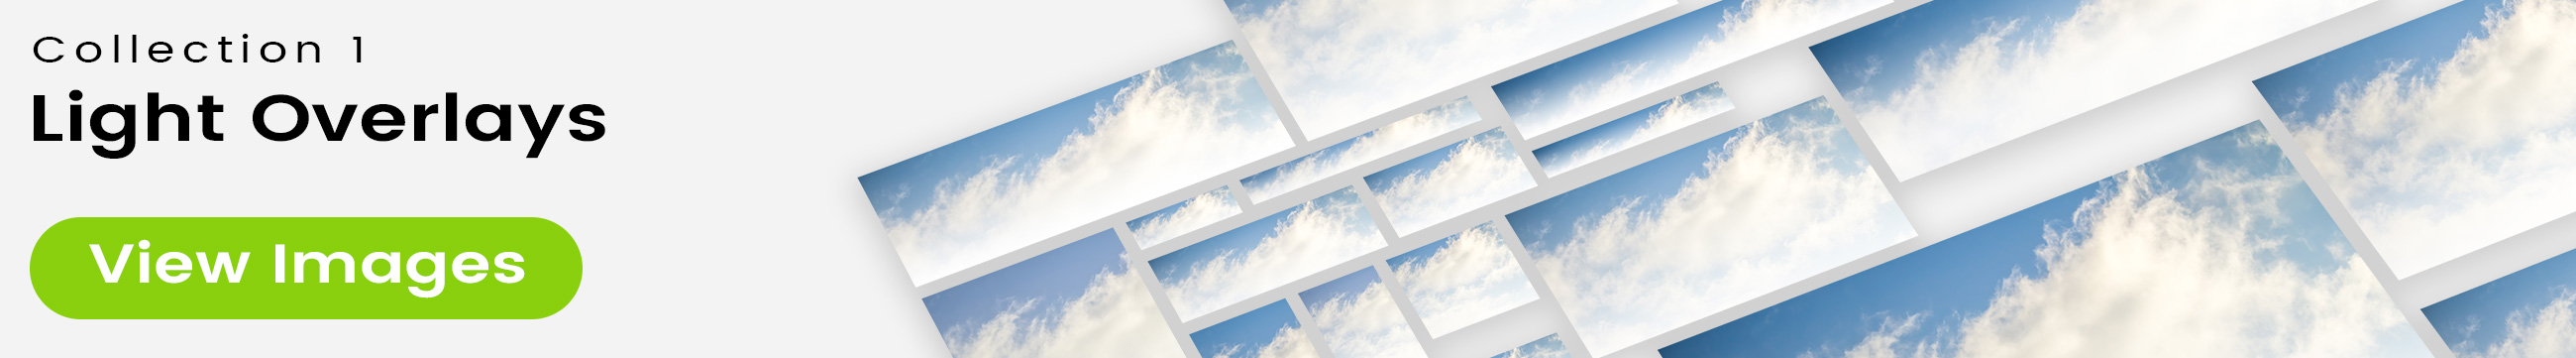 See 25 bonus images included with clouds stock image 9464. Collection 1 of 4 features a light overlay design.